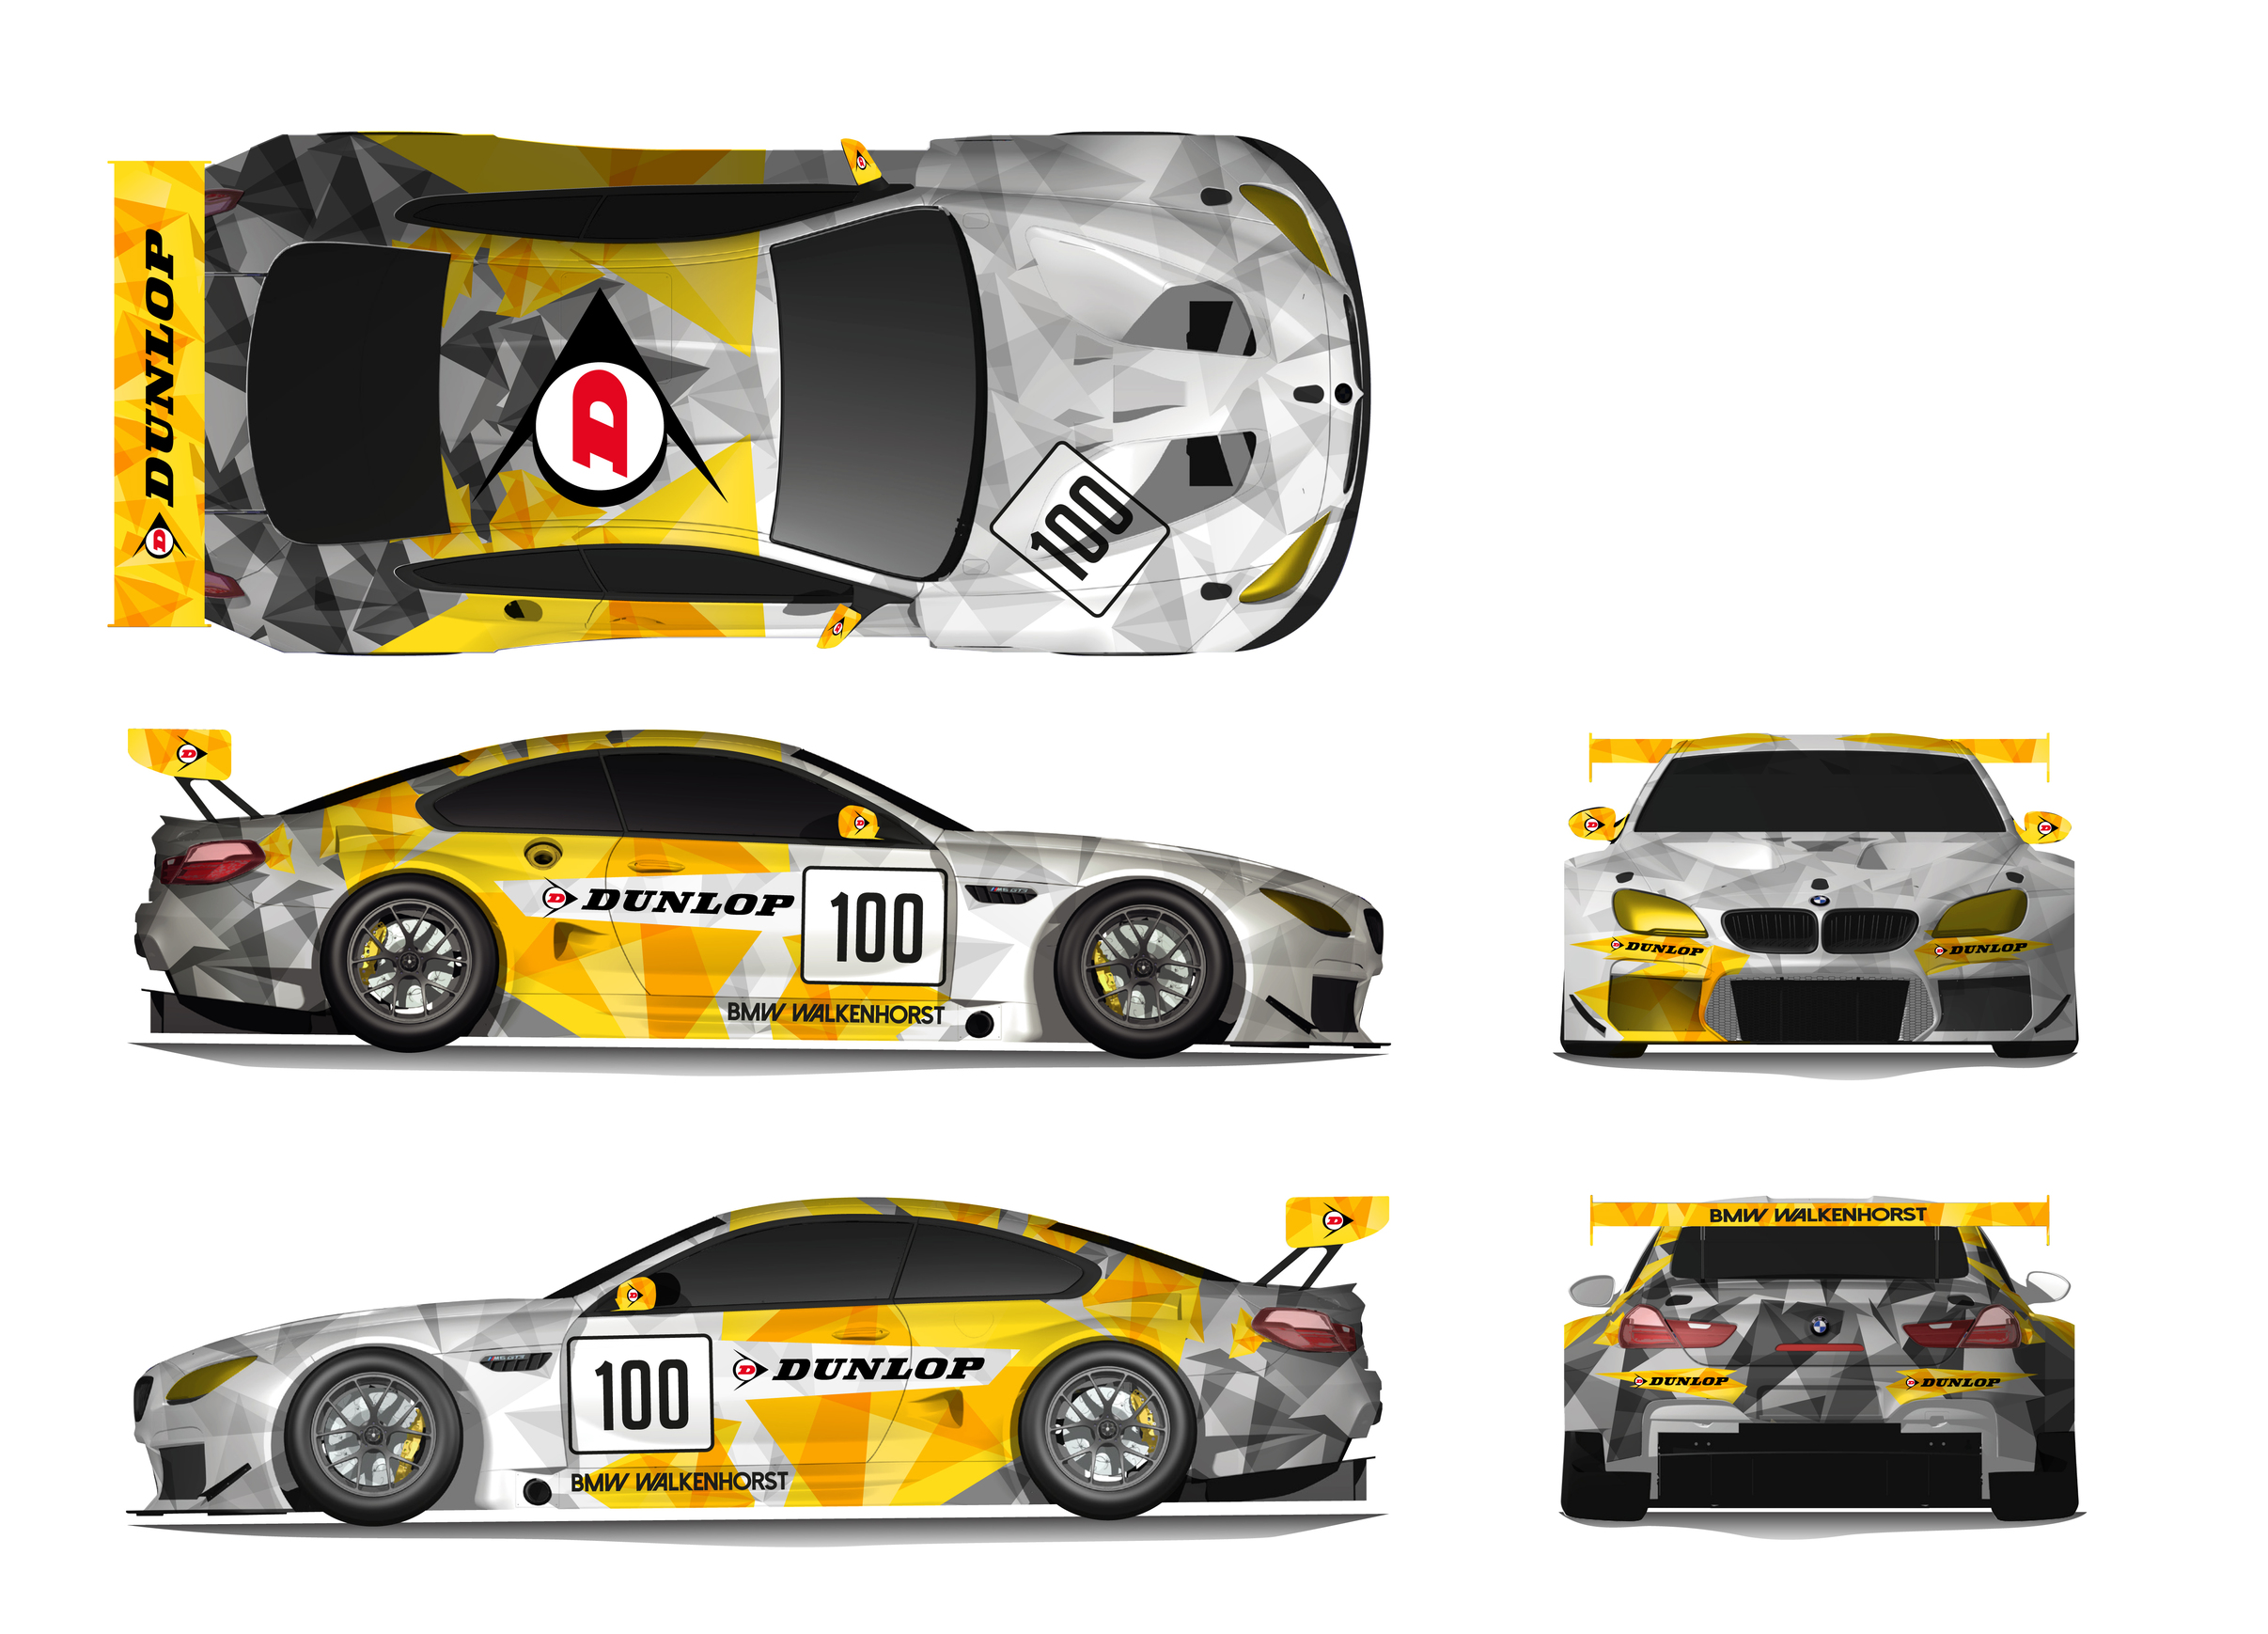 Race Car Livery Design Online